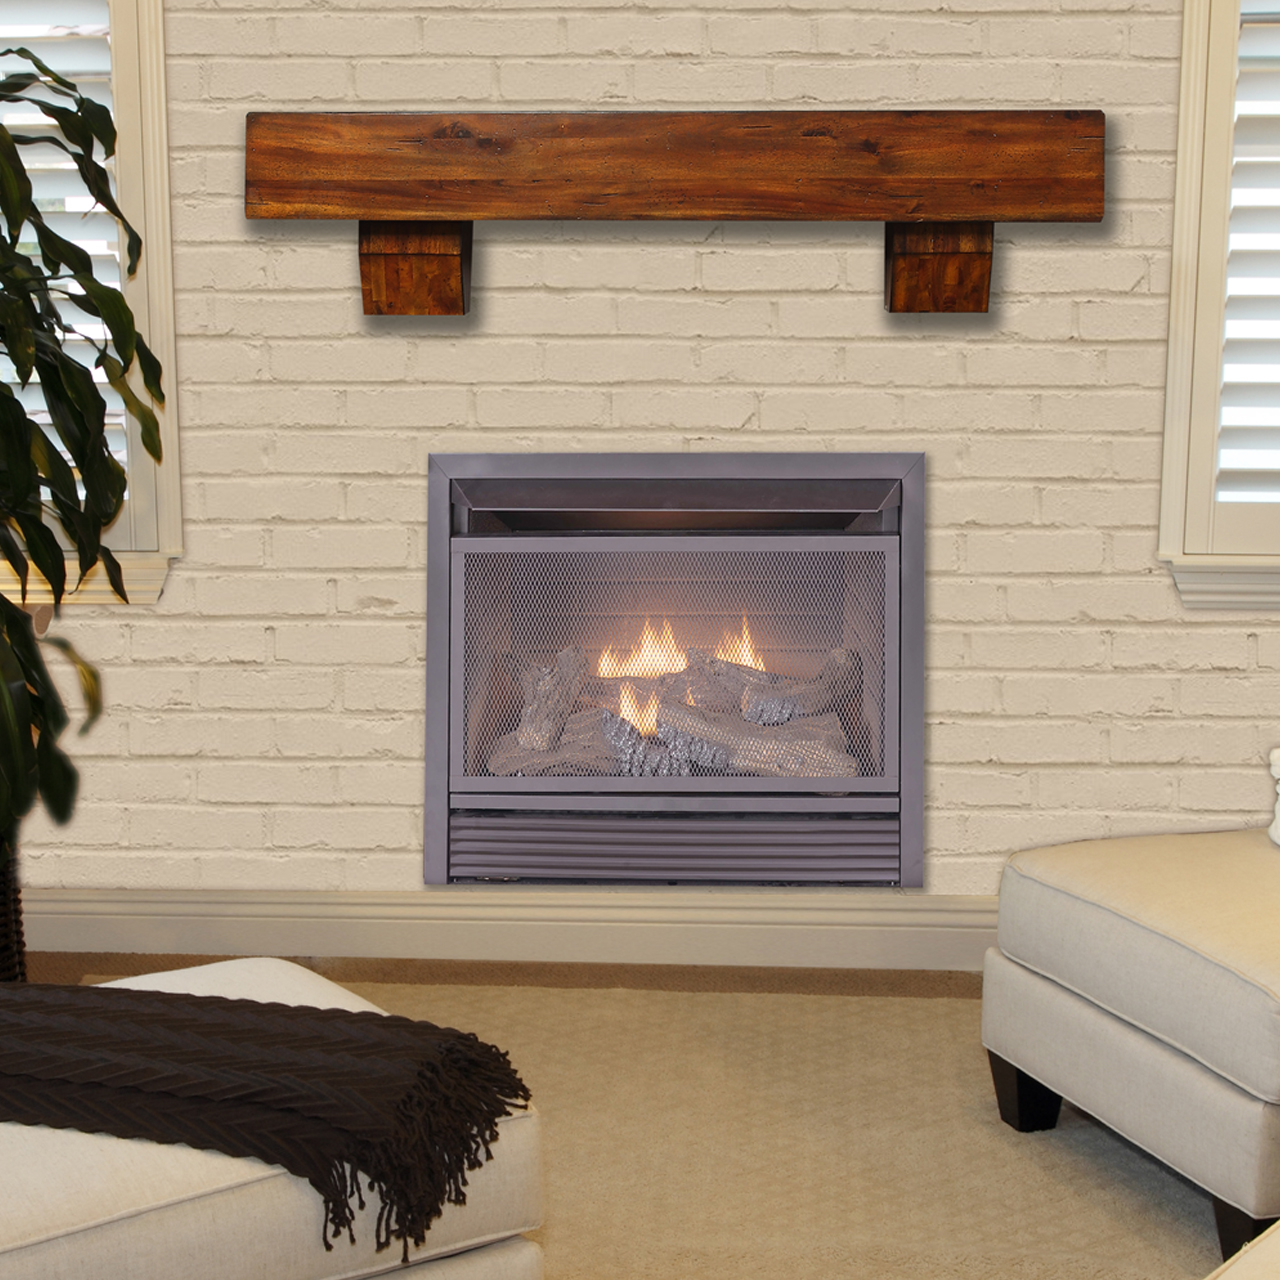 Duluth Forge Dual Fuel Ventless Fireplace Insert 26 000